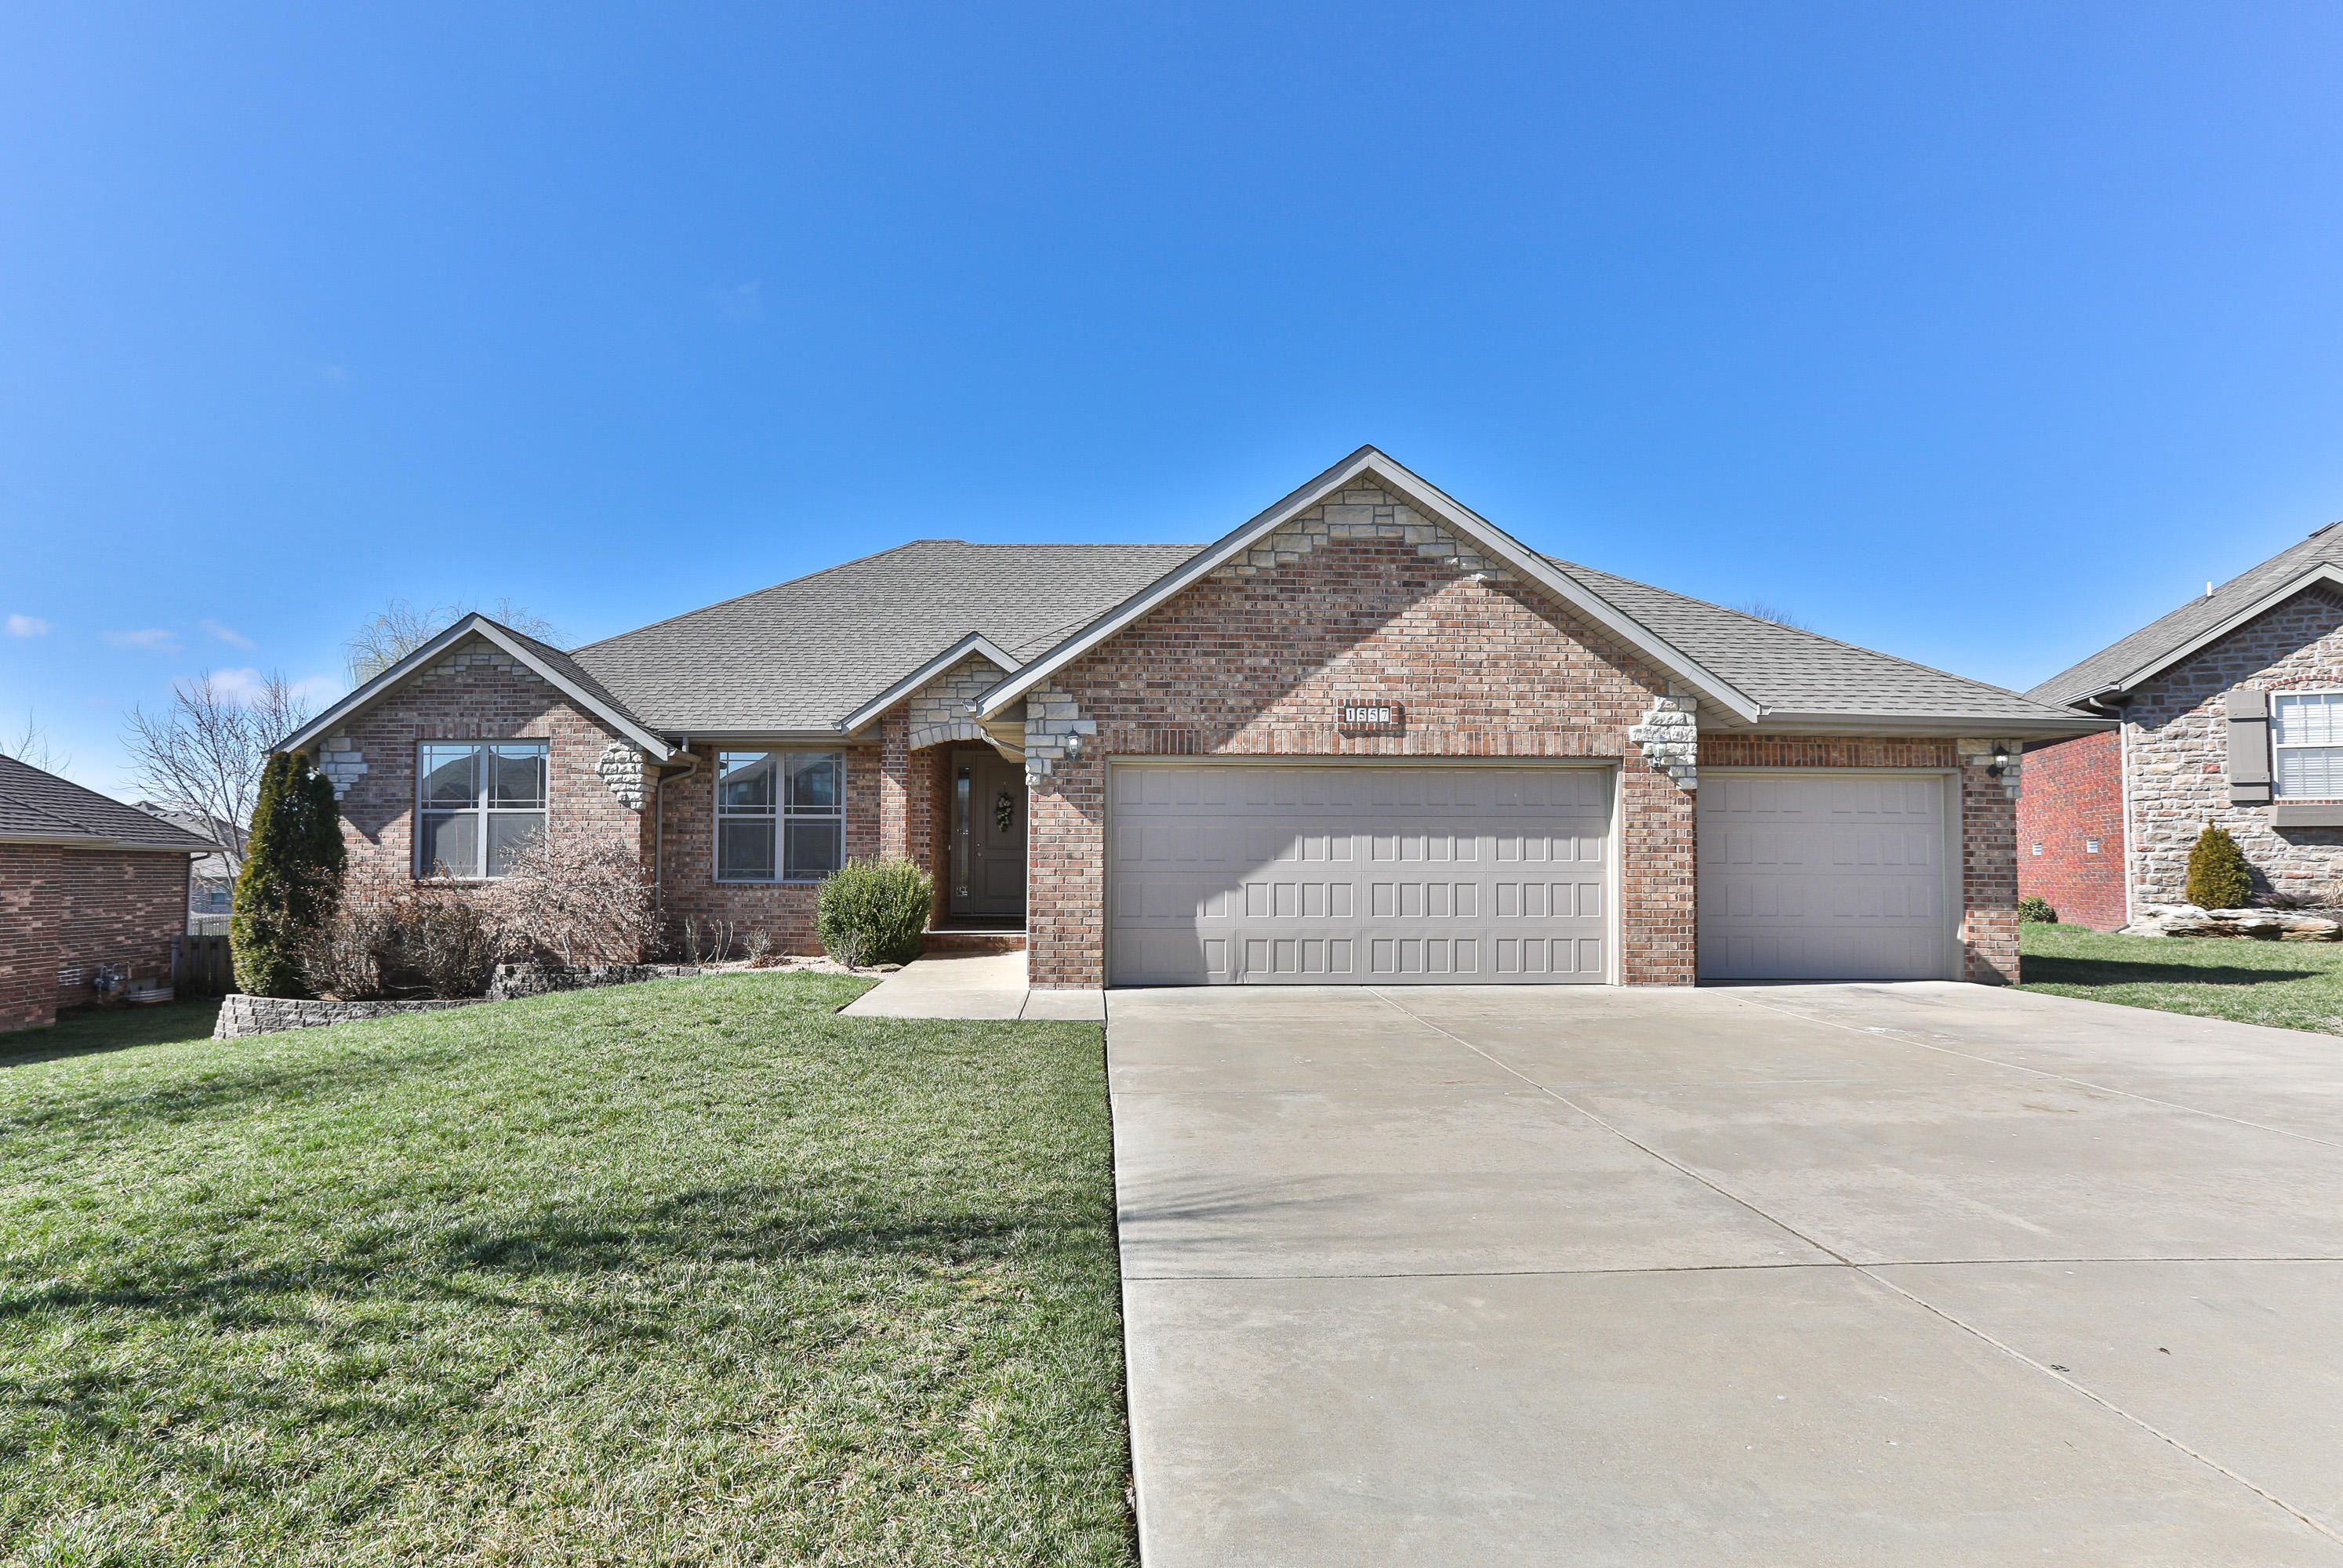 1557 North Oakfair Place Springfield Mo 65802 In 2020 House Prices Stone Houses Covered Back Porches